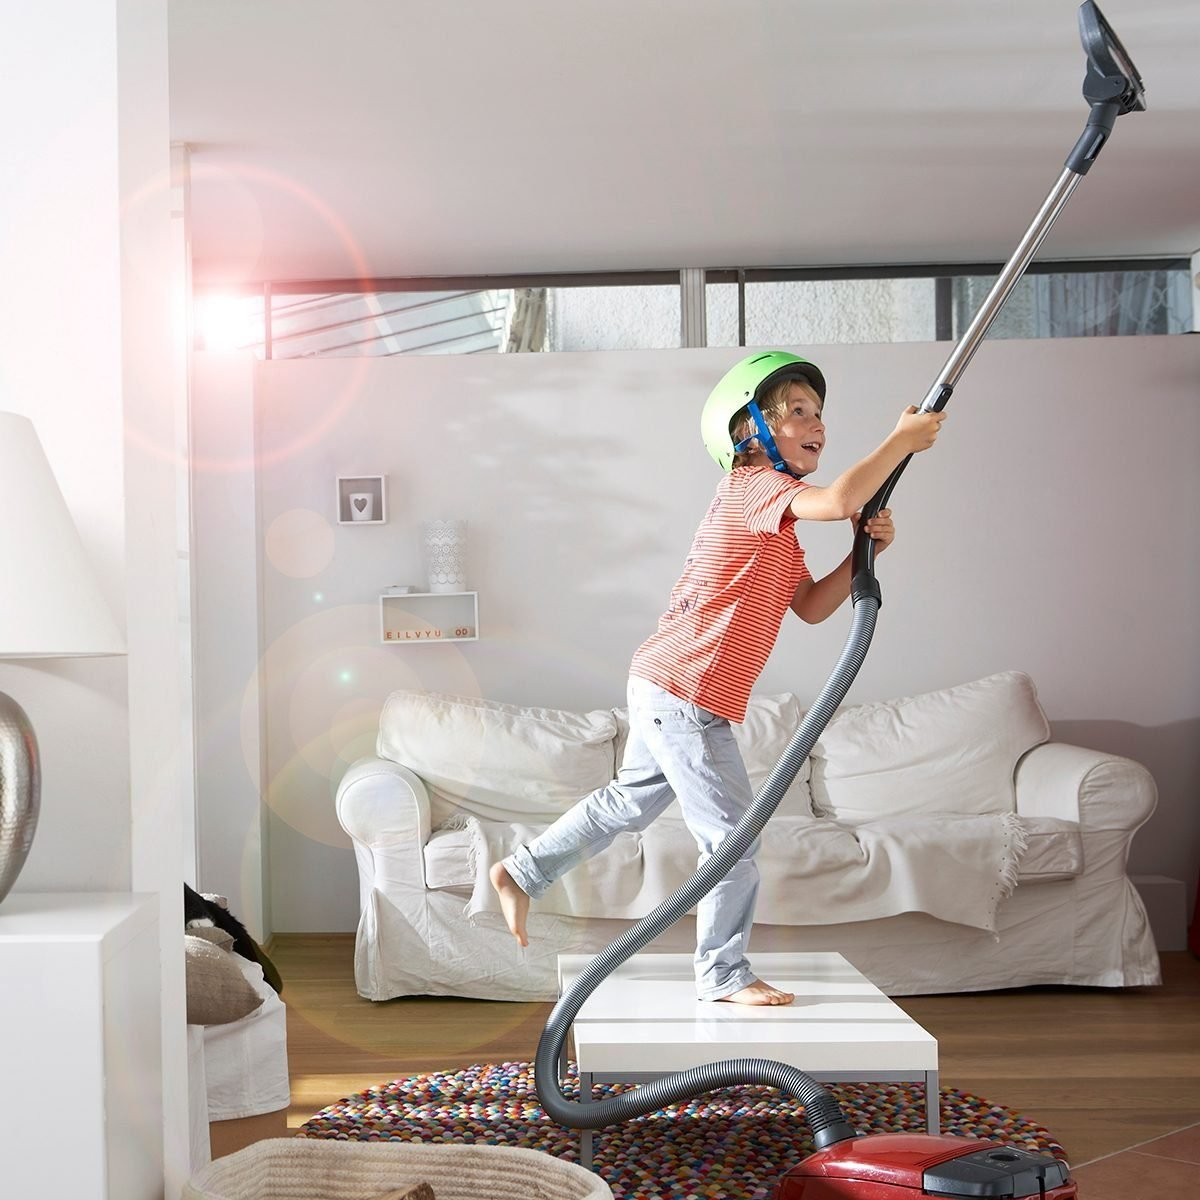 Boy In Living Room Hoovering The Ceiling